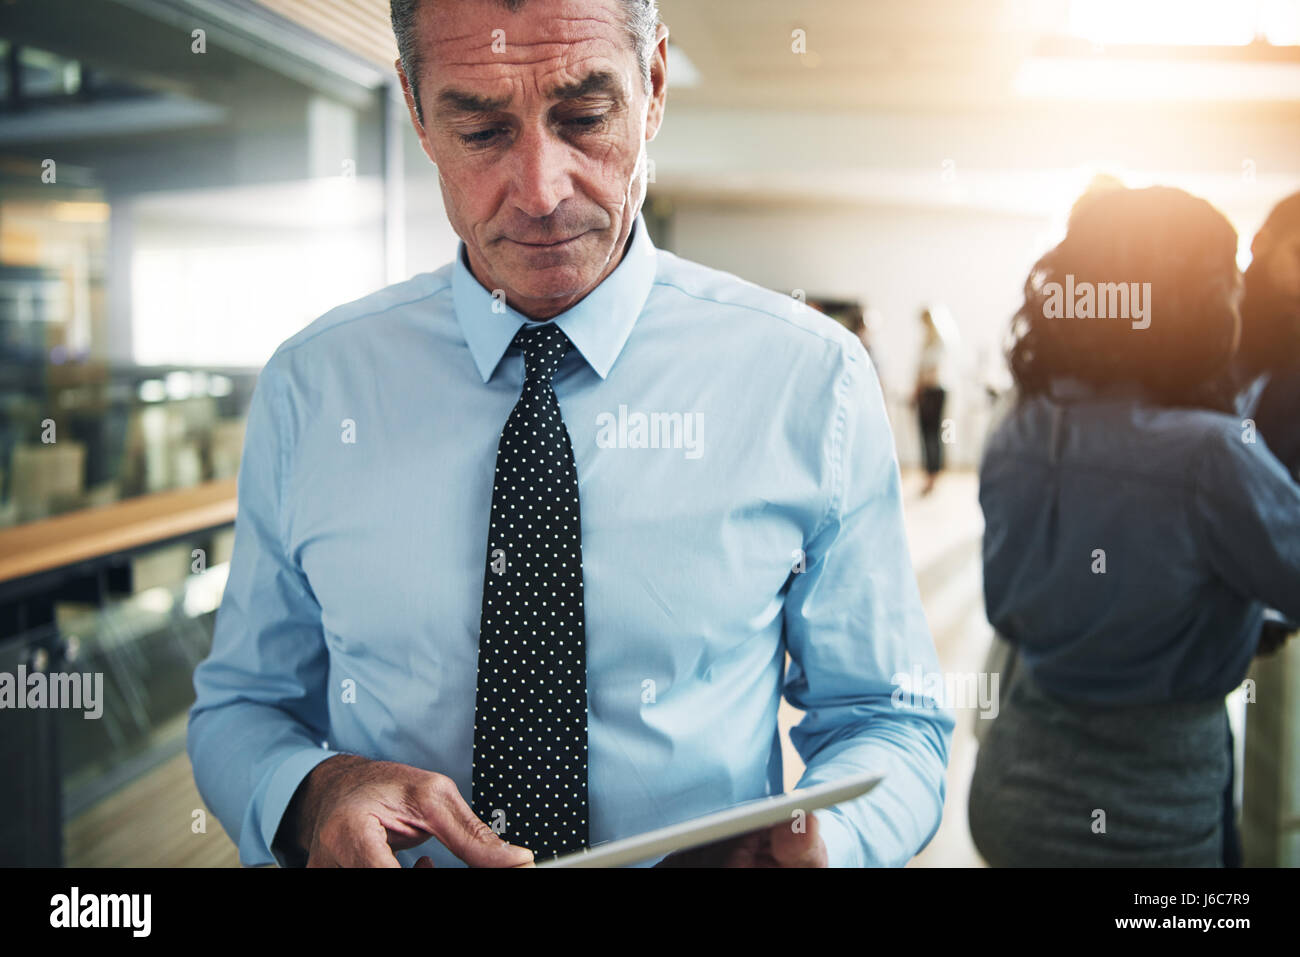 Contemporary mature pensive businessman standing and browsing tablet in office. Stock Photo